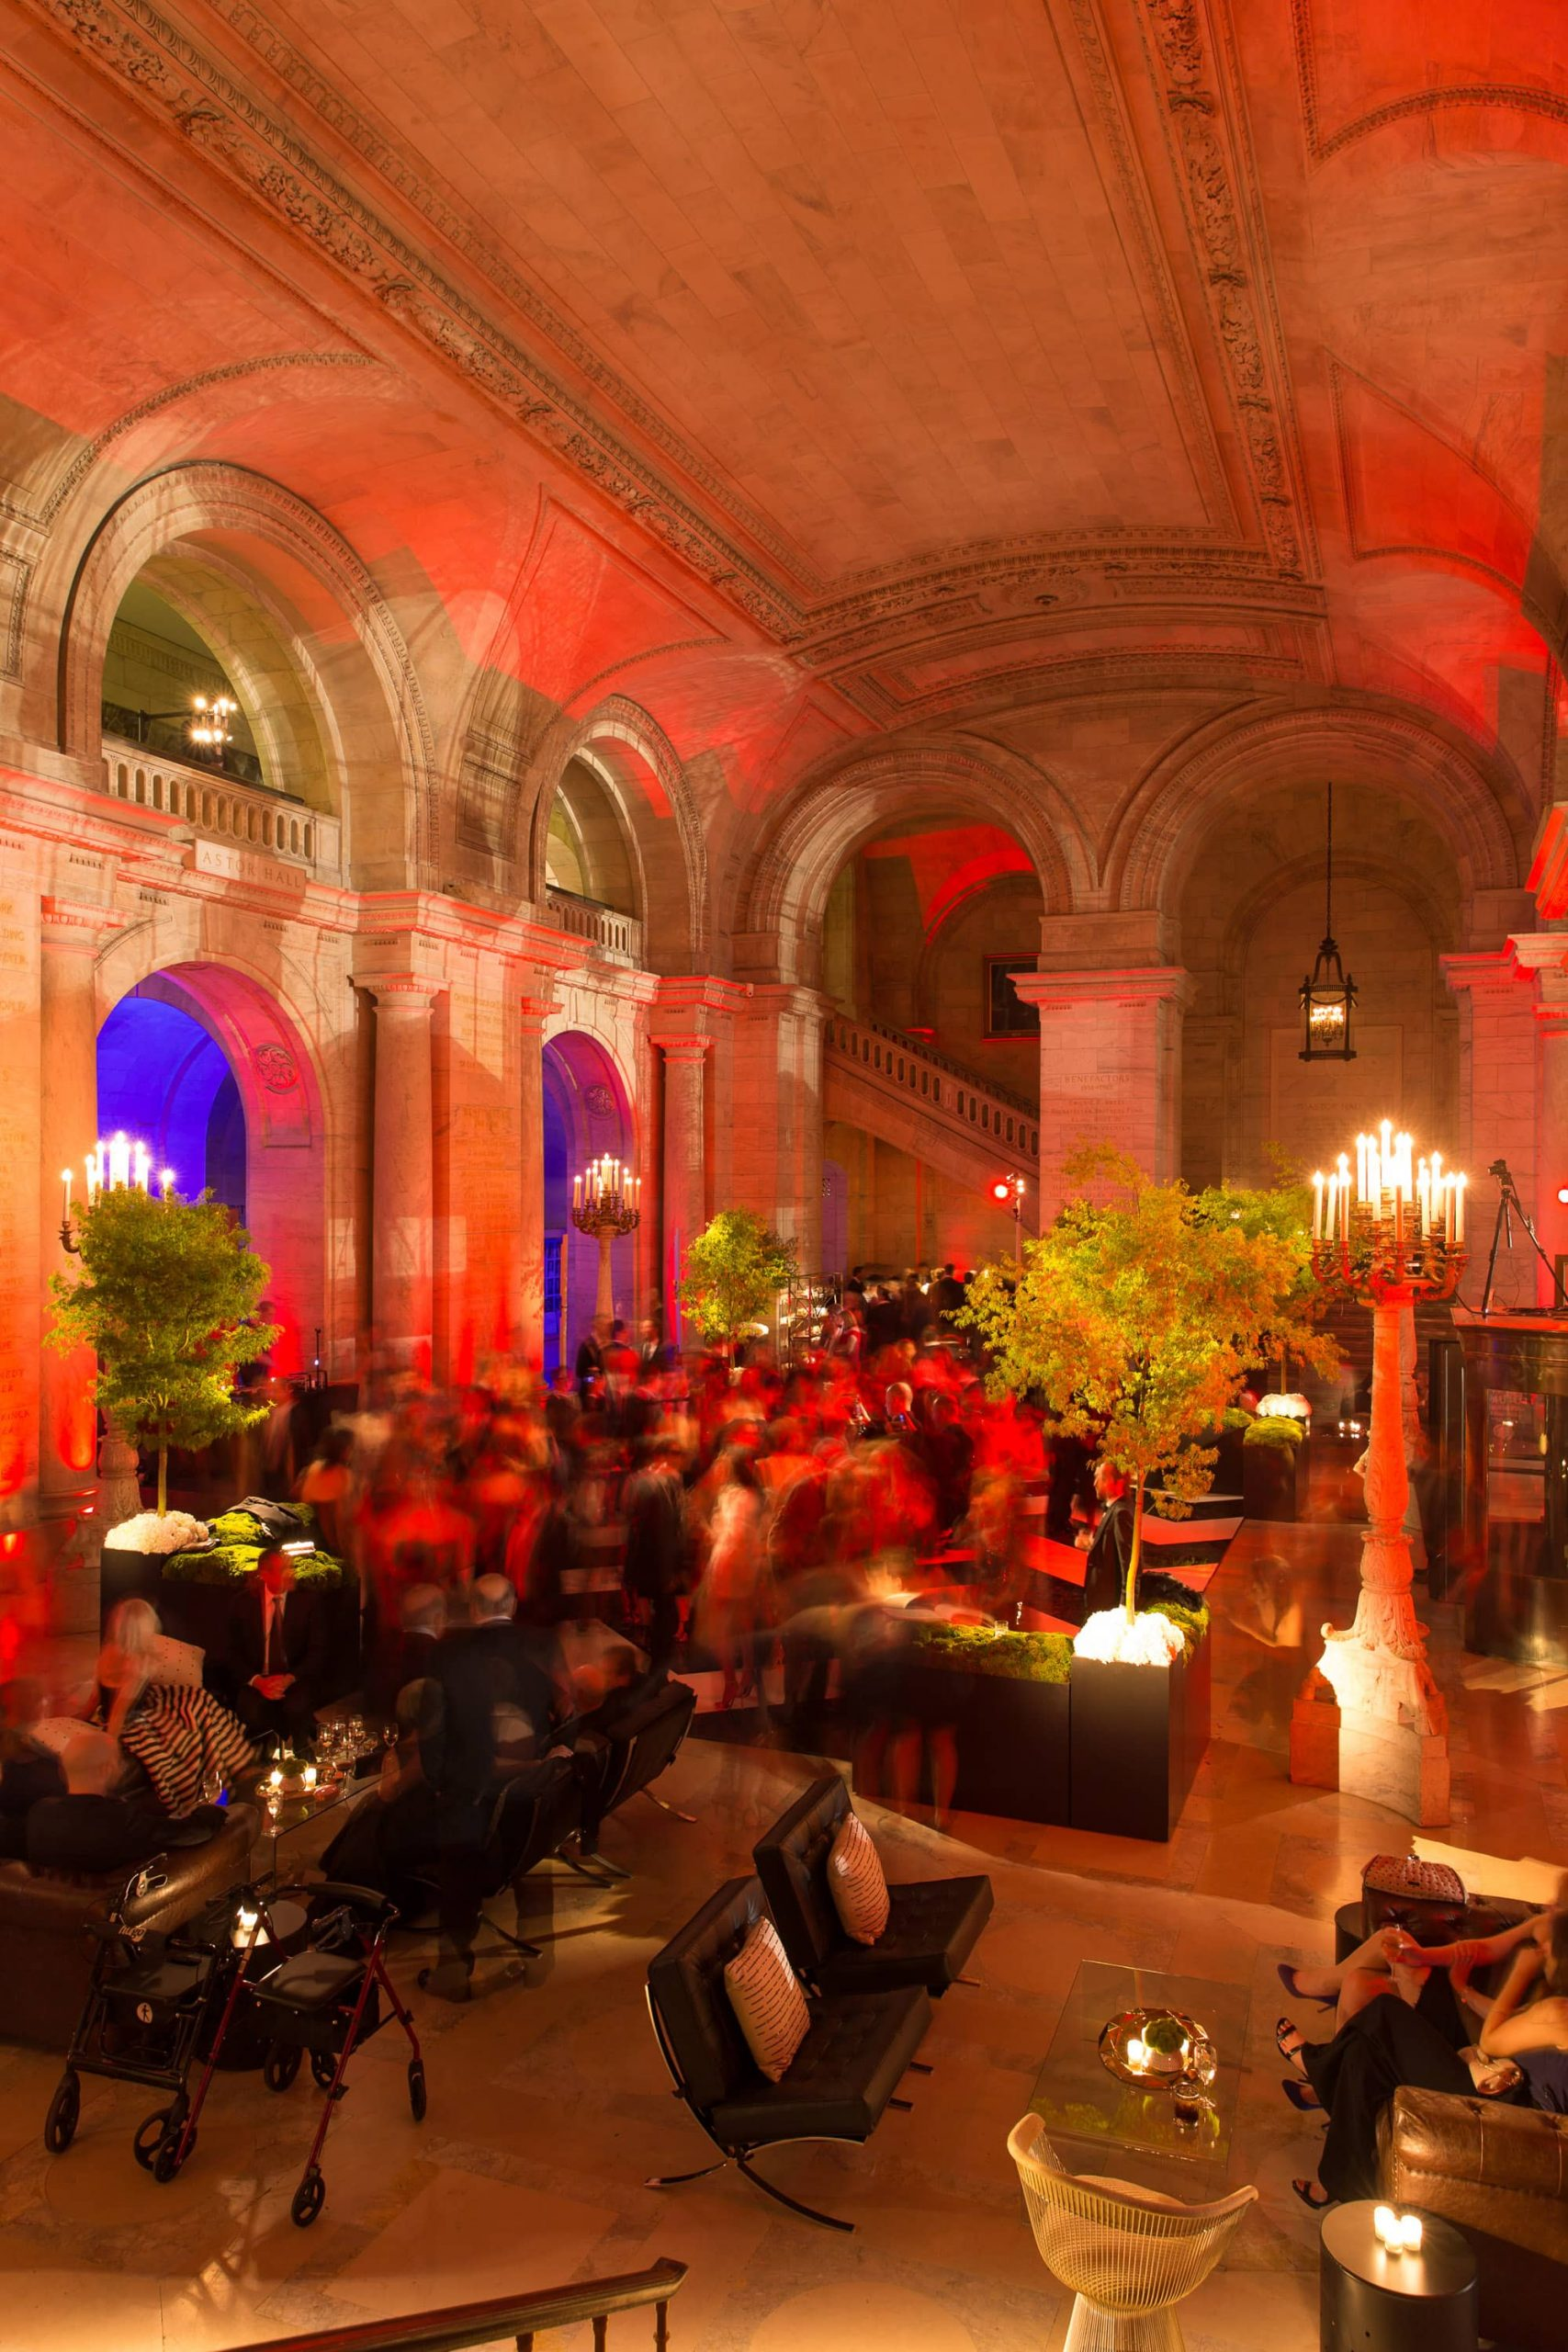 Guests during reception at this New York Public Library wedding | Photo by Genevieve de Manio